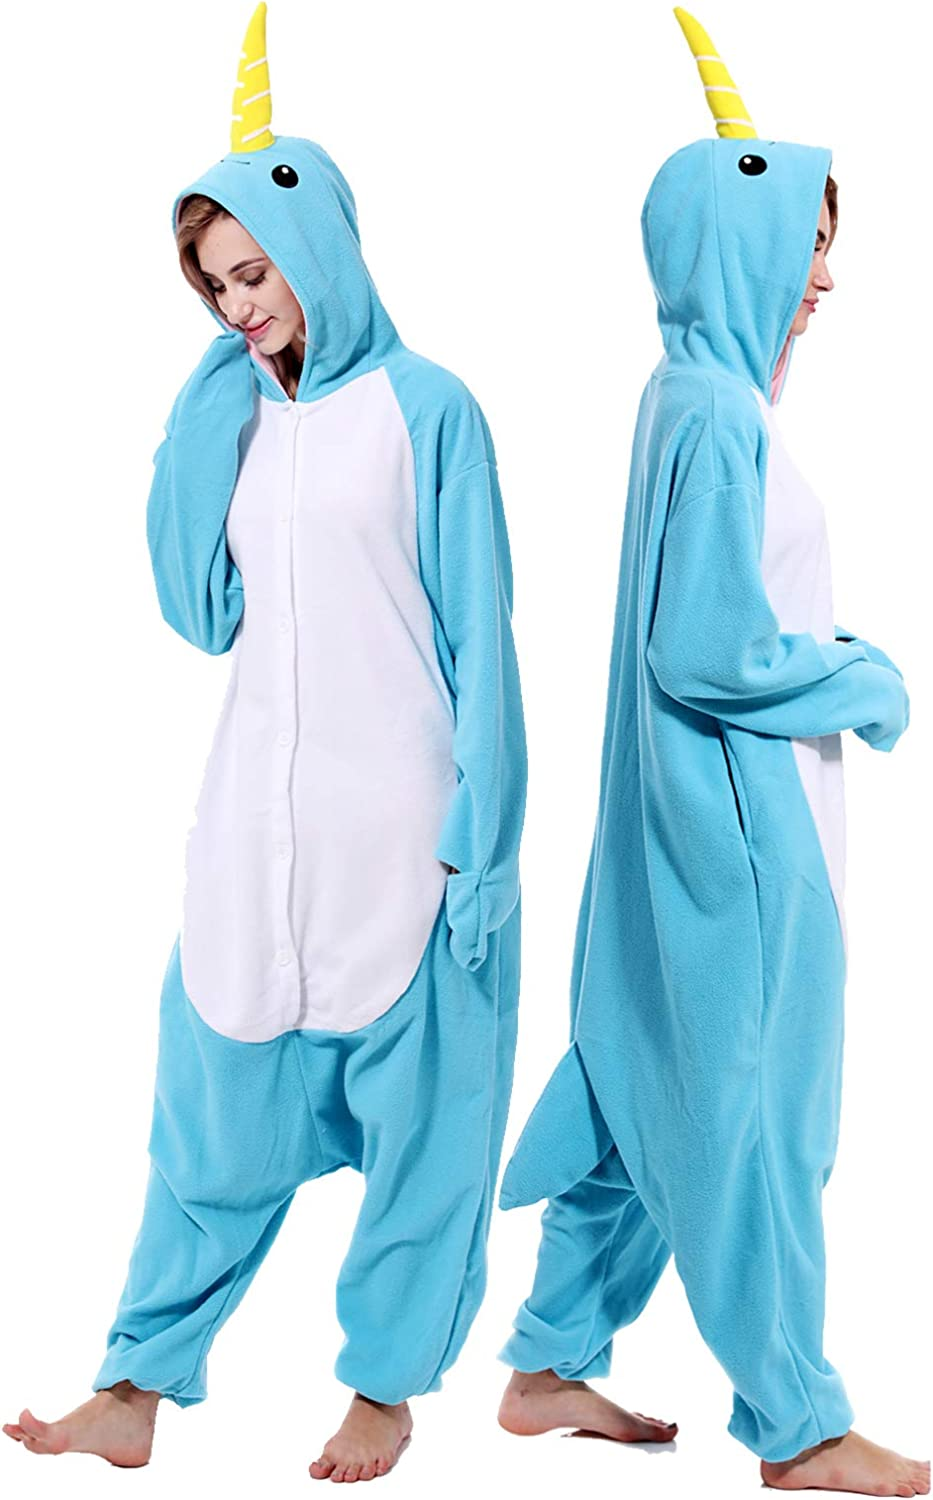 Unisex Narwhal Onesie Adult Pajamas Animal Halloween Costume Cosplay One Piece Sleepwear for Women Men